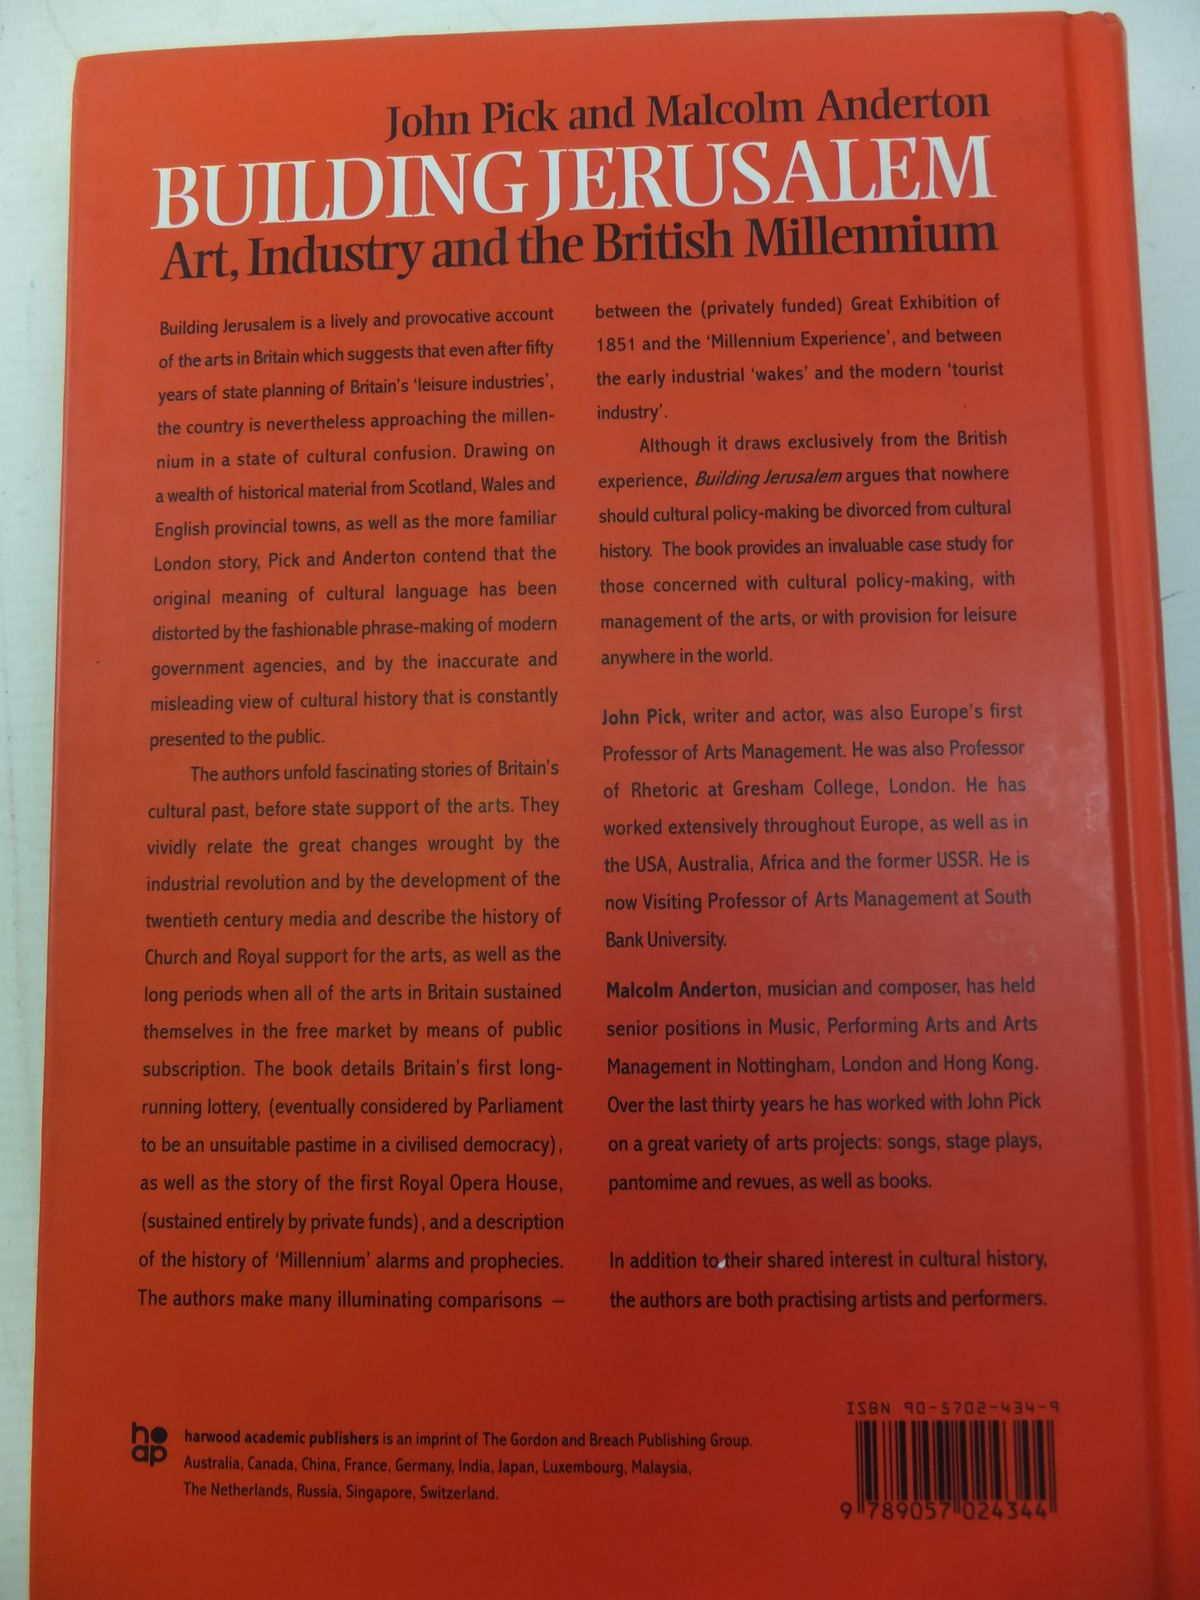 Photo of BUILDING JERUSALEM ART, INDUSTRY AND THE BRITISH MILLENIUM written by Pick, John Anderton, Malcolm published by Harwood Academic Publishers (STOCK CODE: 1810493)  for sale by Stella & Rose's Books